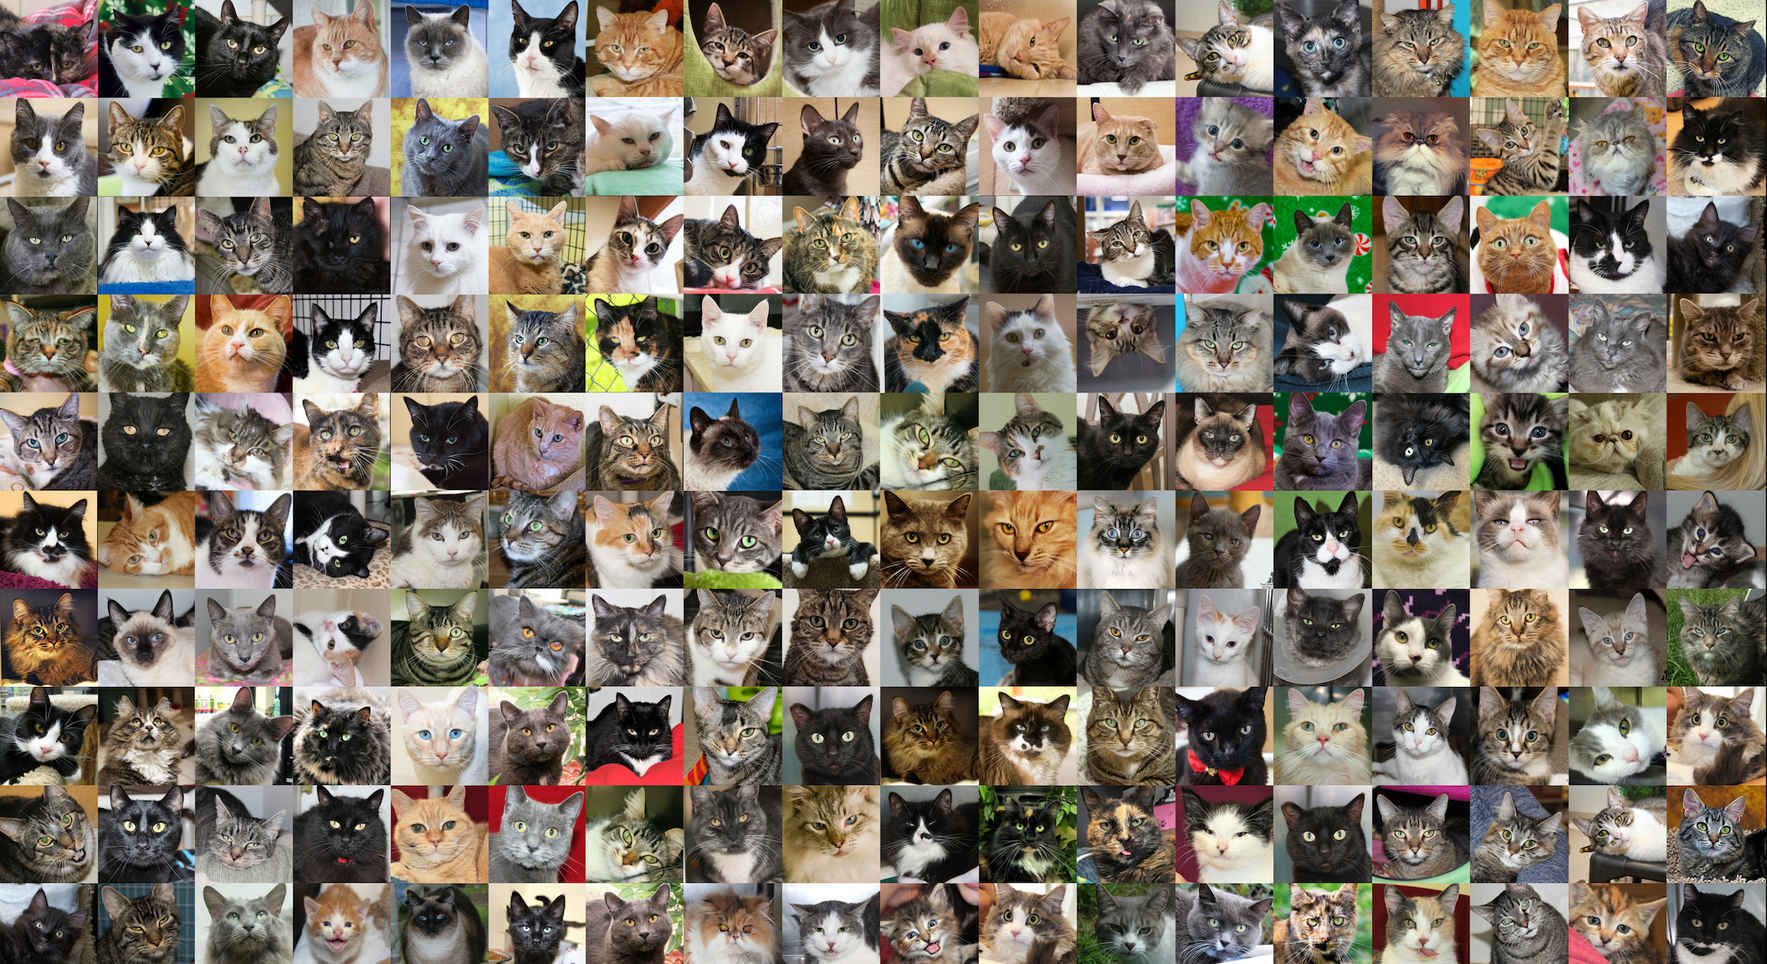 Let's Provide Second Chances for Special Cats and Kittens! image